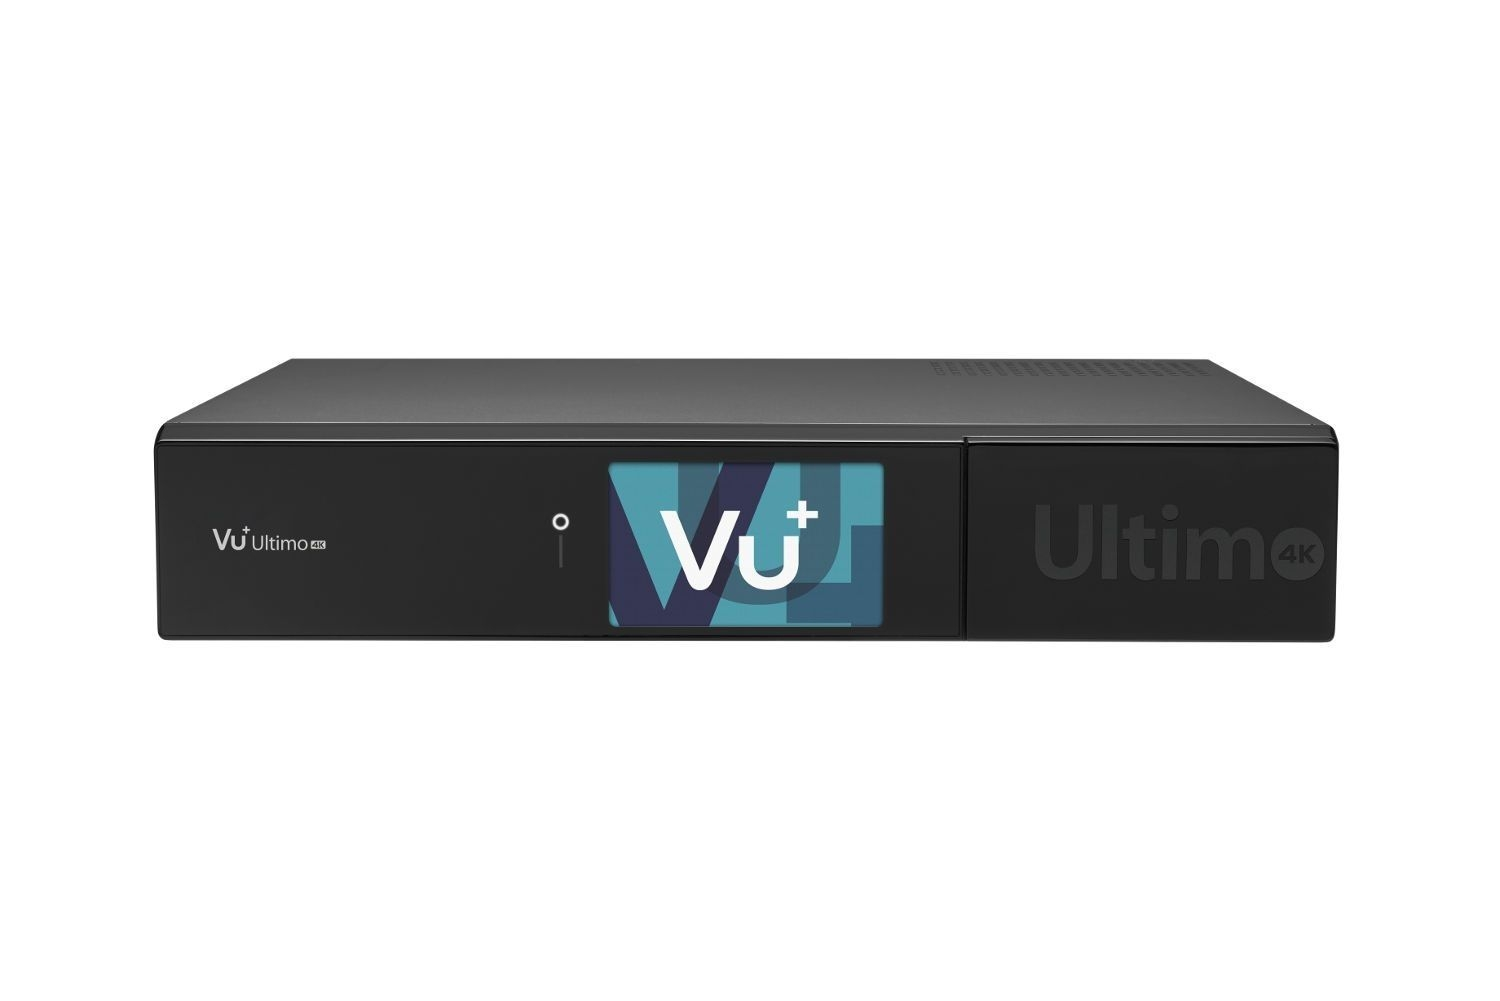 VU+ Ultimo 4K 2x DVB-C FBC / 1x DVB-S2 Dual Tuner 3 TB HDD Linux Receiver UHD 2160p